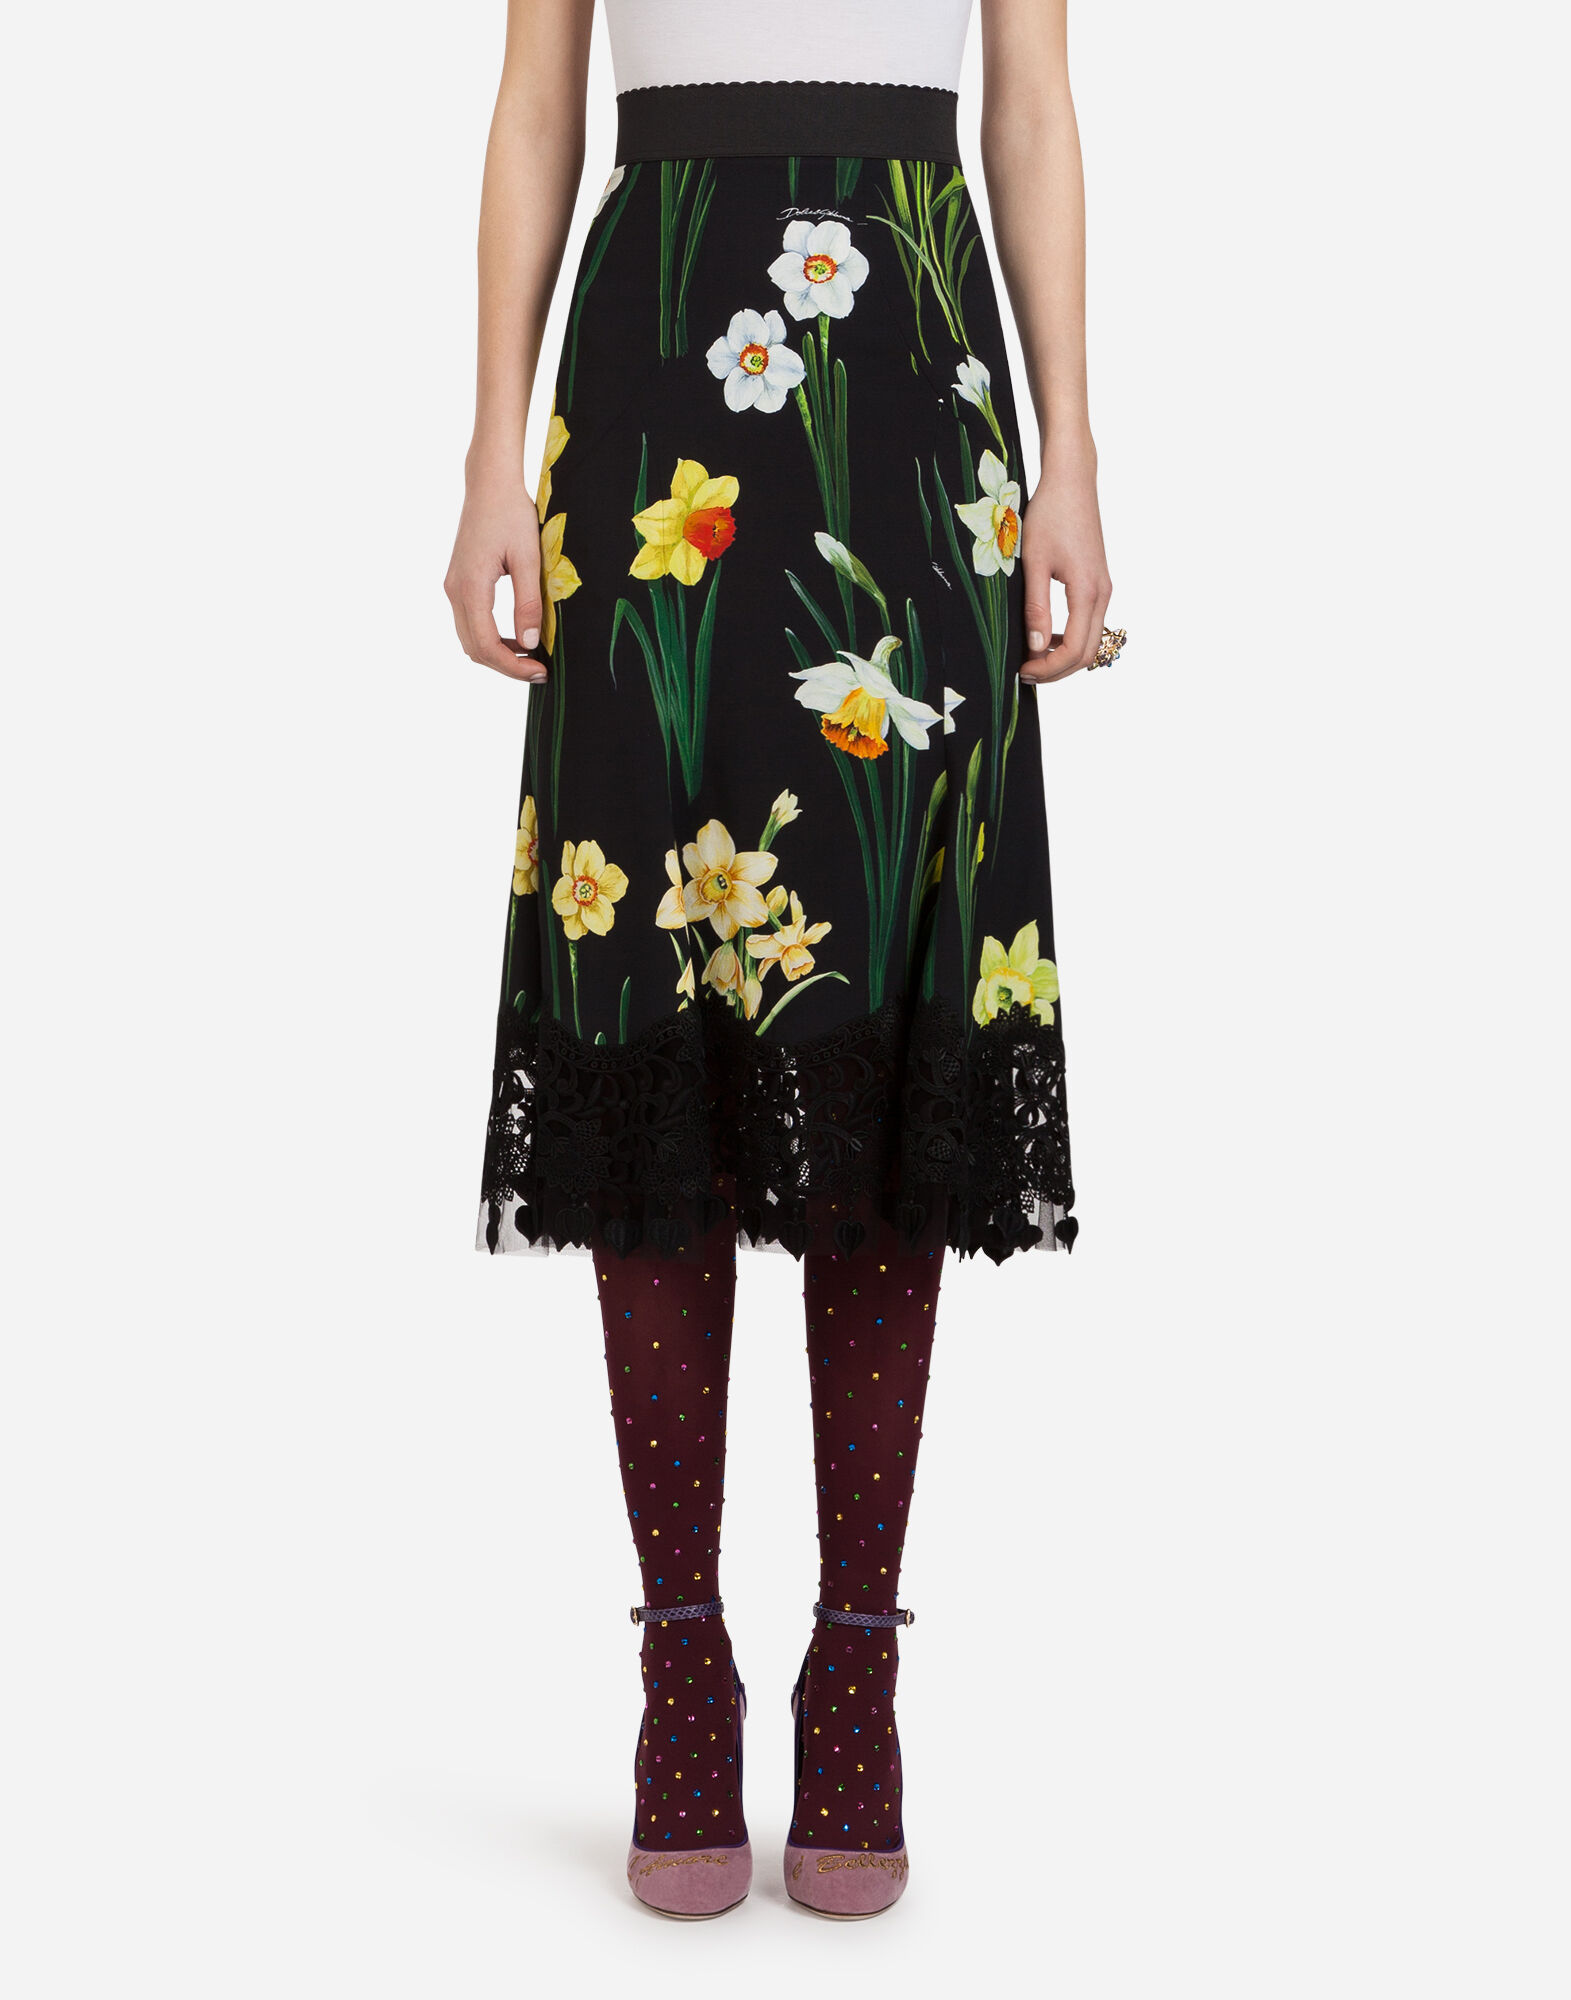 Daffodil-Print Cady Midi Skirt in Black